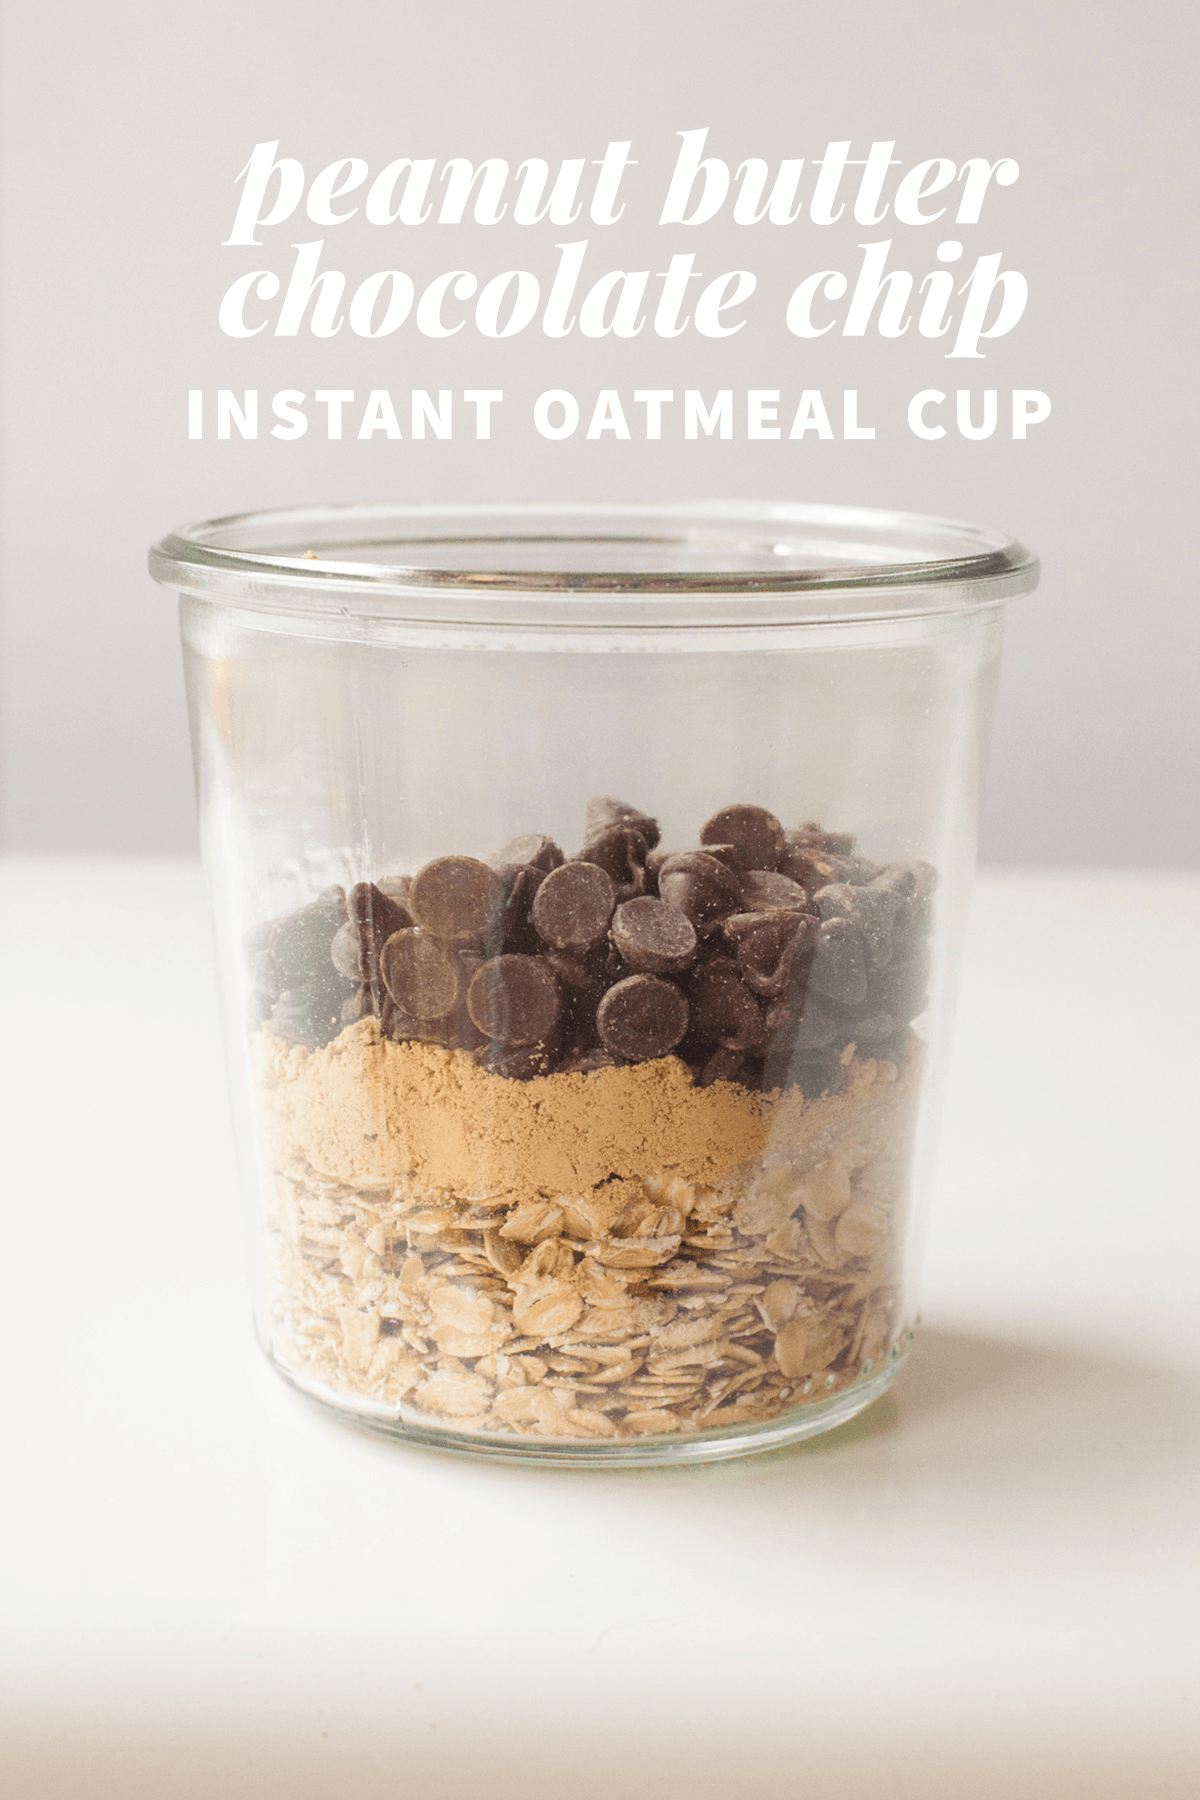 Healthy Instant Oatmeal Cups—Peanut Butter Chocolate Chip